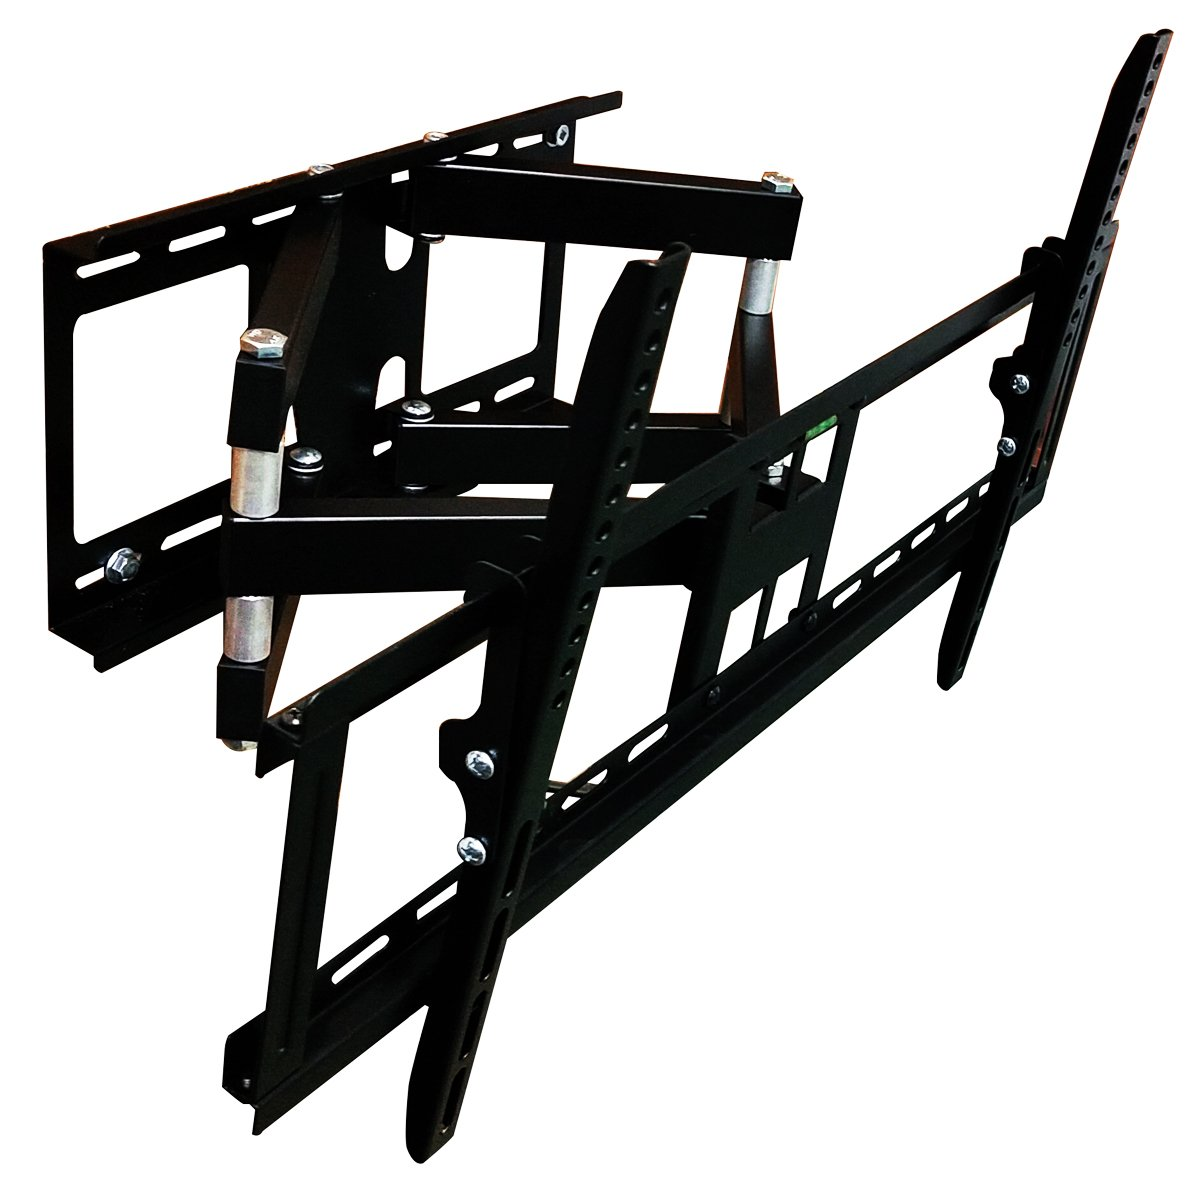 Globaltone 03270 TV Wall Mount Bracket - Full Motion Dual Articulating for 32 to 70 inch Flat Screen – Tilt, Swivel and Level - Vesa up to 600 x 400